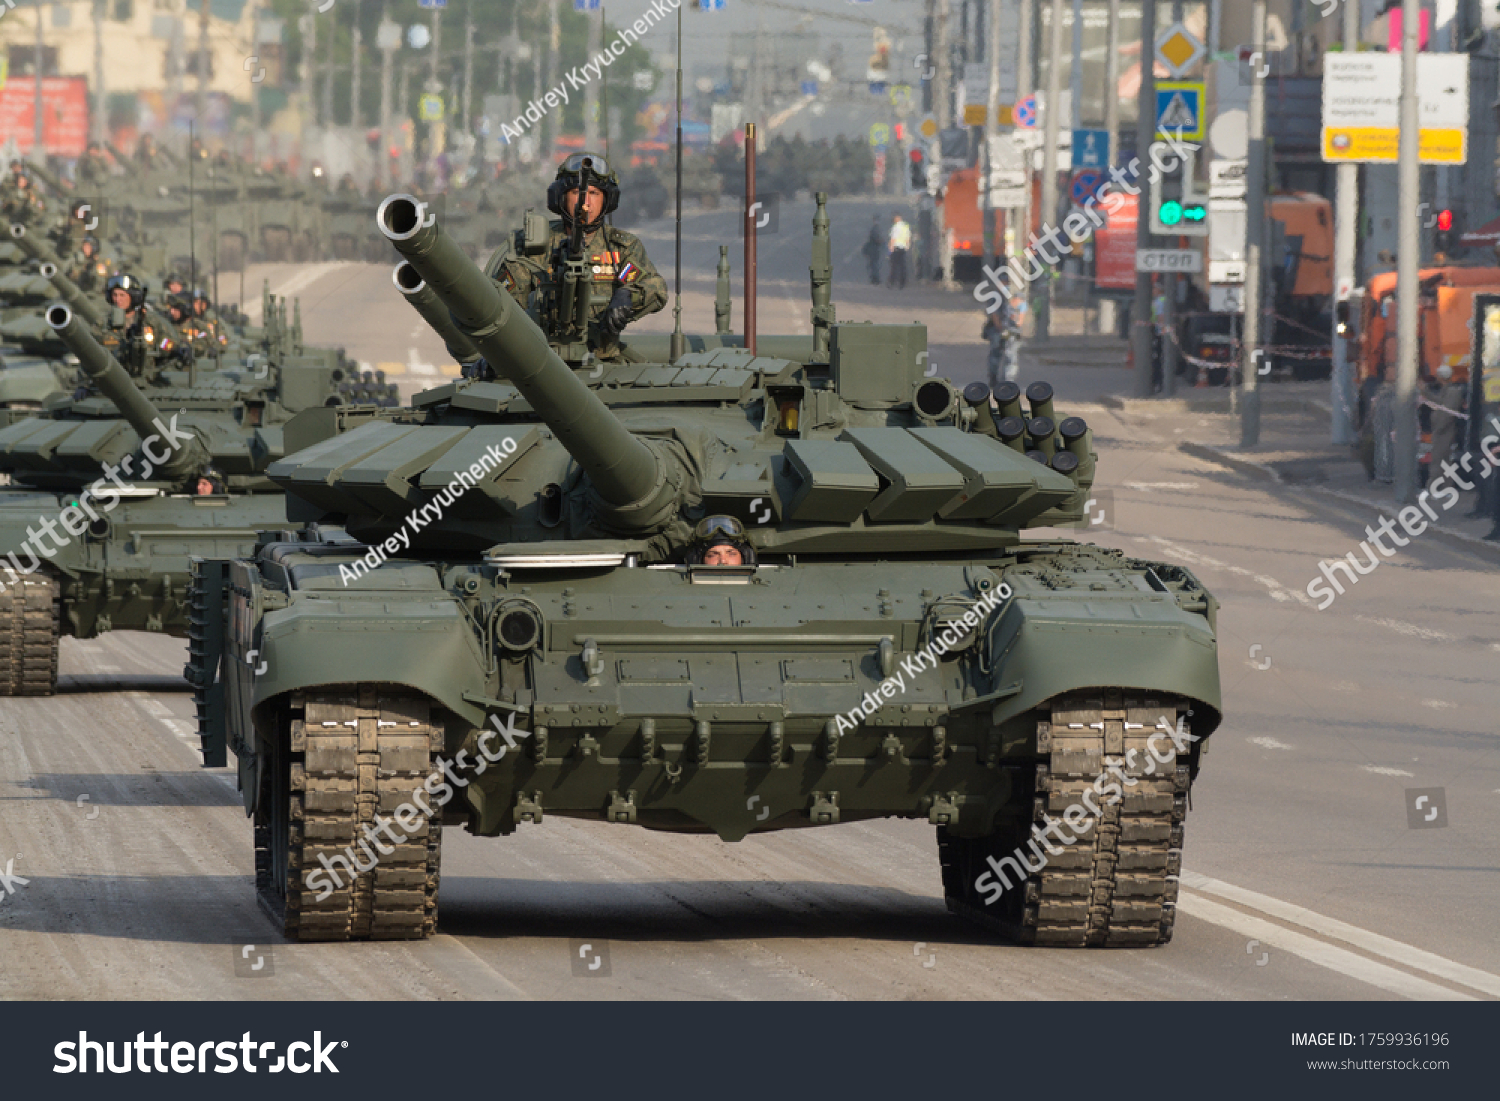 https://image.shutterstock.com/z/stock-photo-june-moscow-russia-column-of-t-b-mod-tanks-follows-to-the-red-square-to-1759936196.jpg